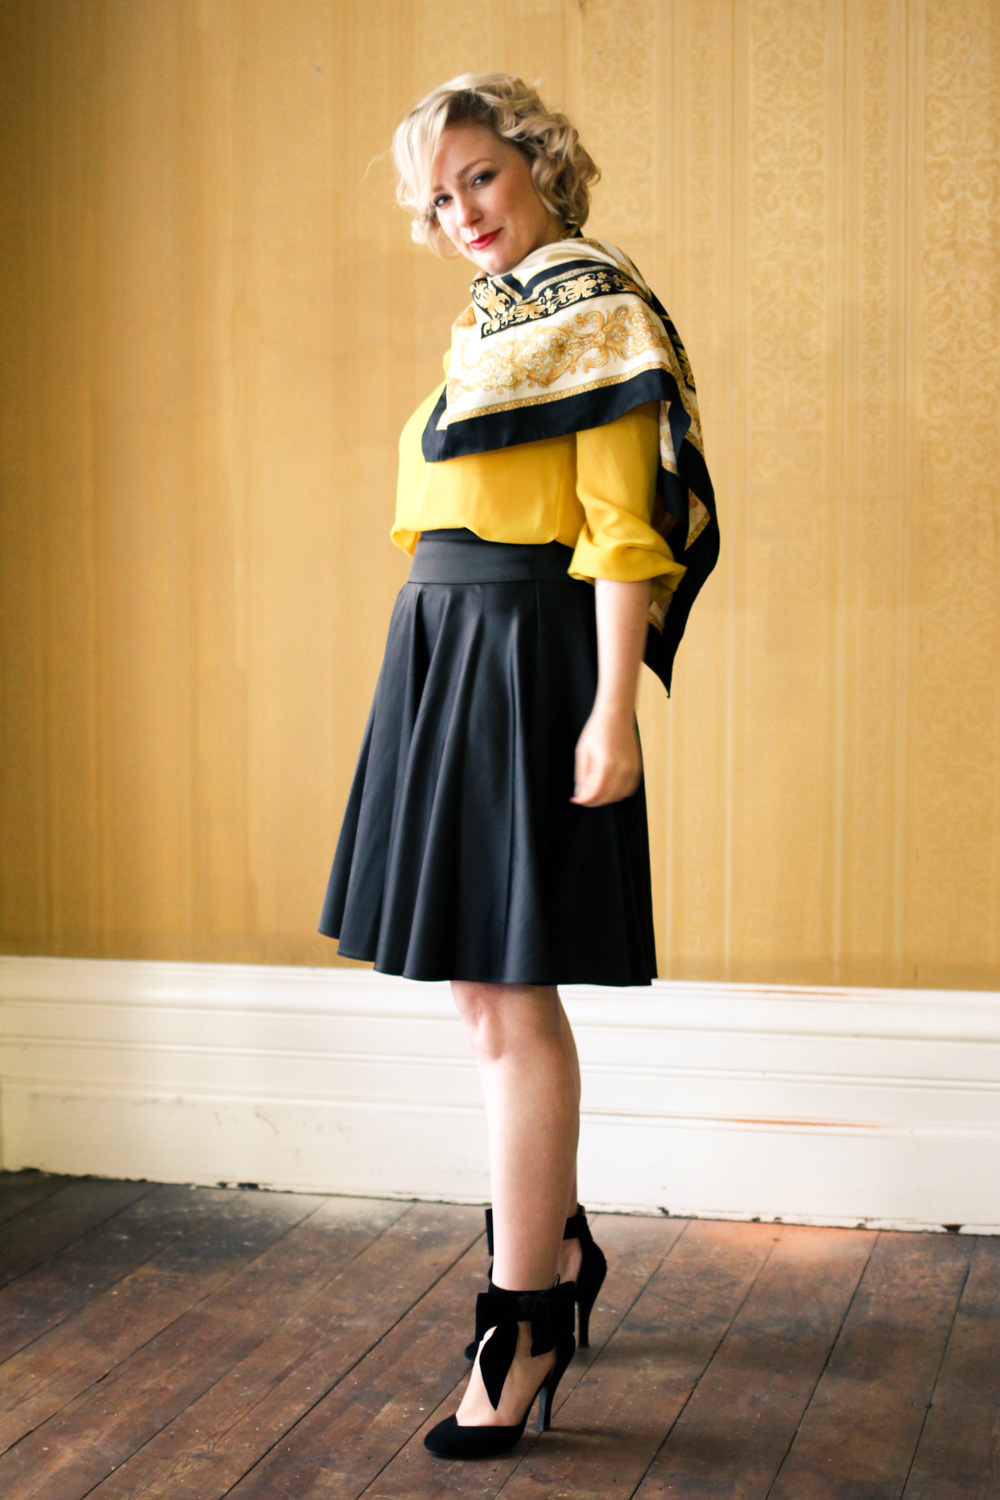 @findingfemme in yellow blouse with black lace collar, black Review Australia skirt, black bow heels and classic scarf.